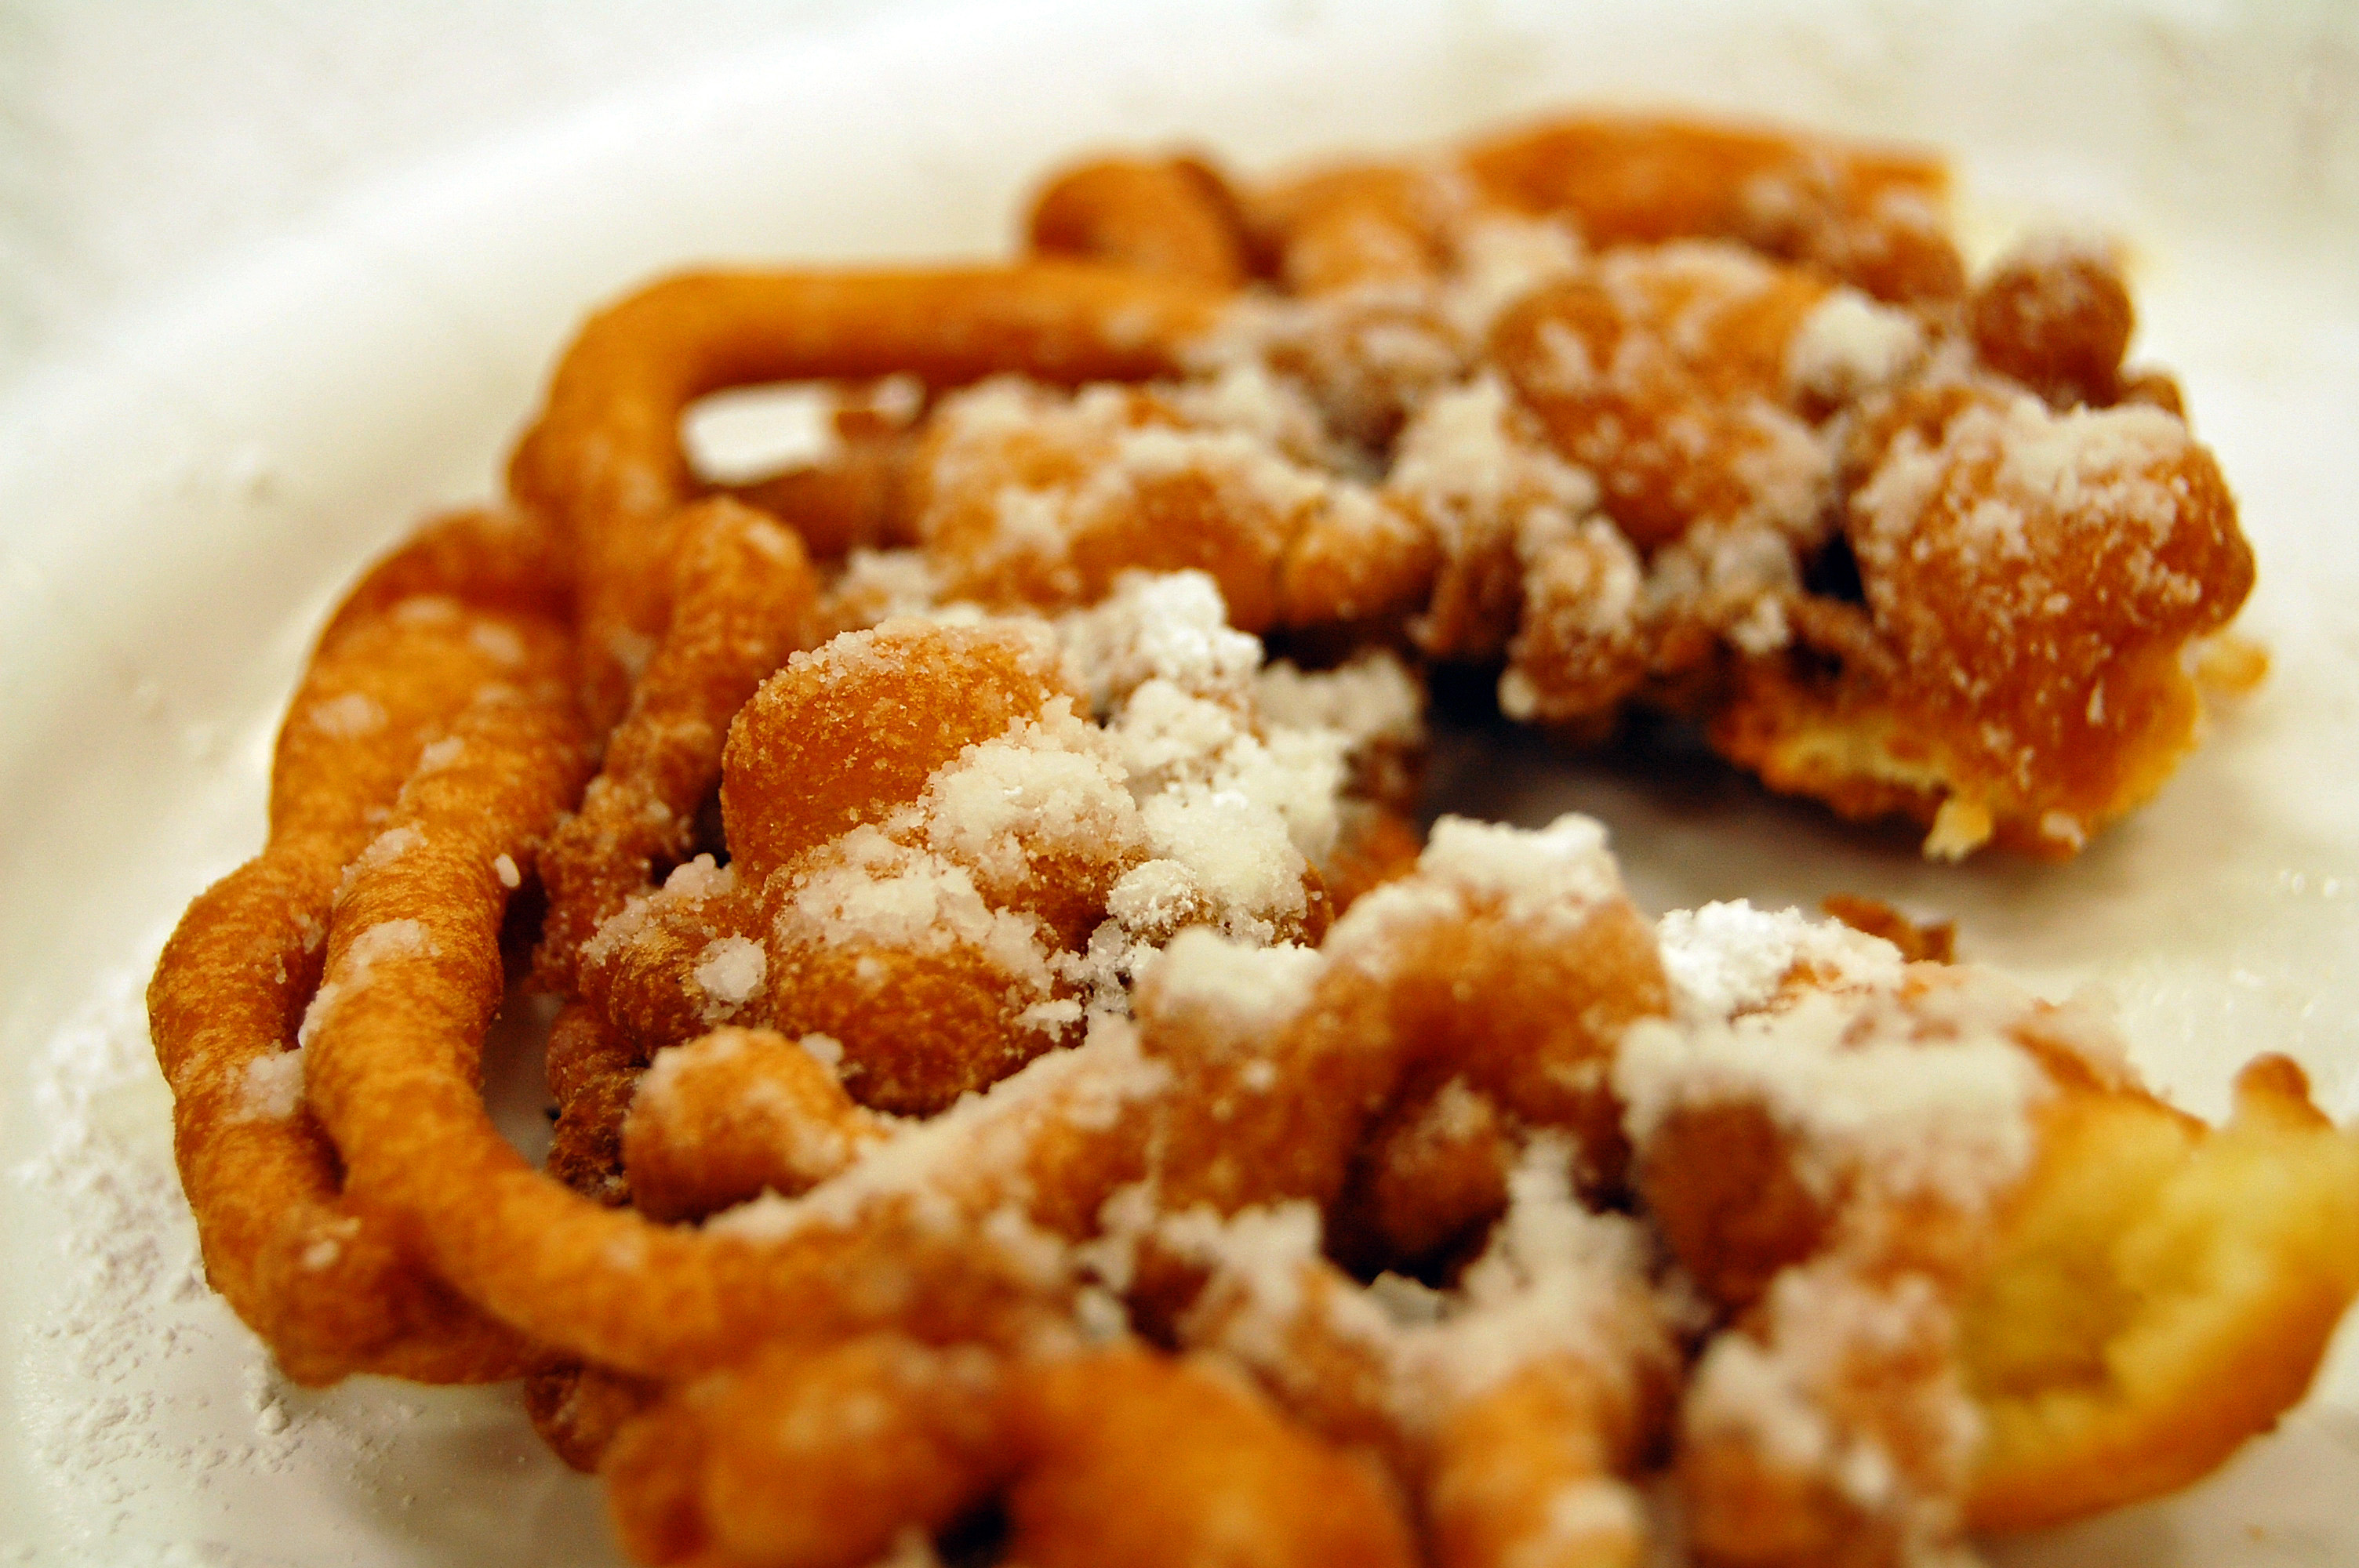 File:C-shaped funnel cake.jpg - Wikimedia Commons